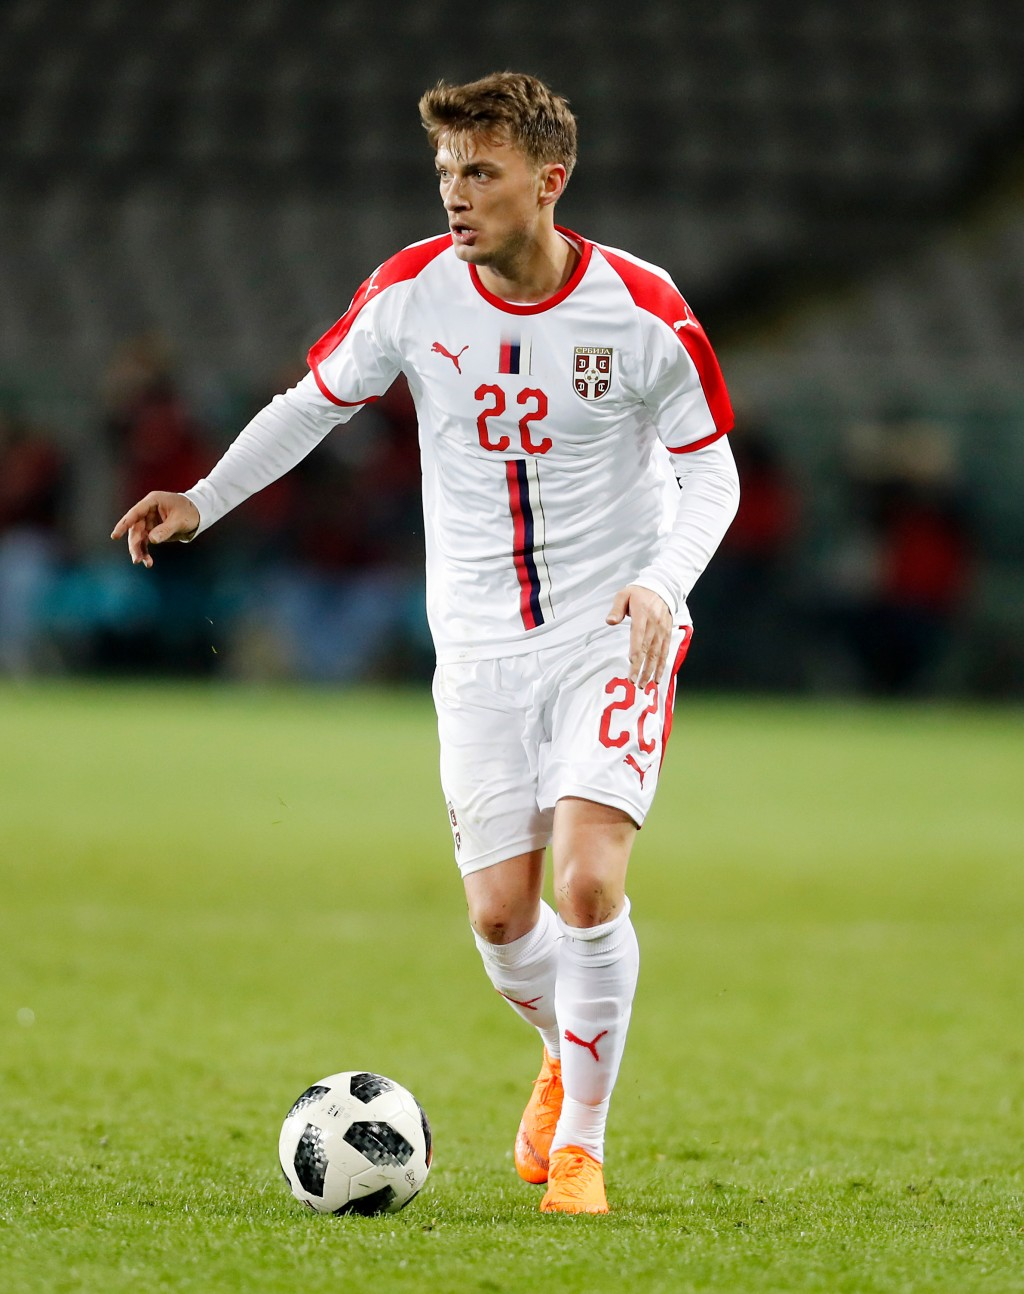 In this photo taken on Friday, March 23, 2018, Serbia's Adem Ljajic controls the ball during a friendly soccer match between Serbia and Morocco in Tur...